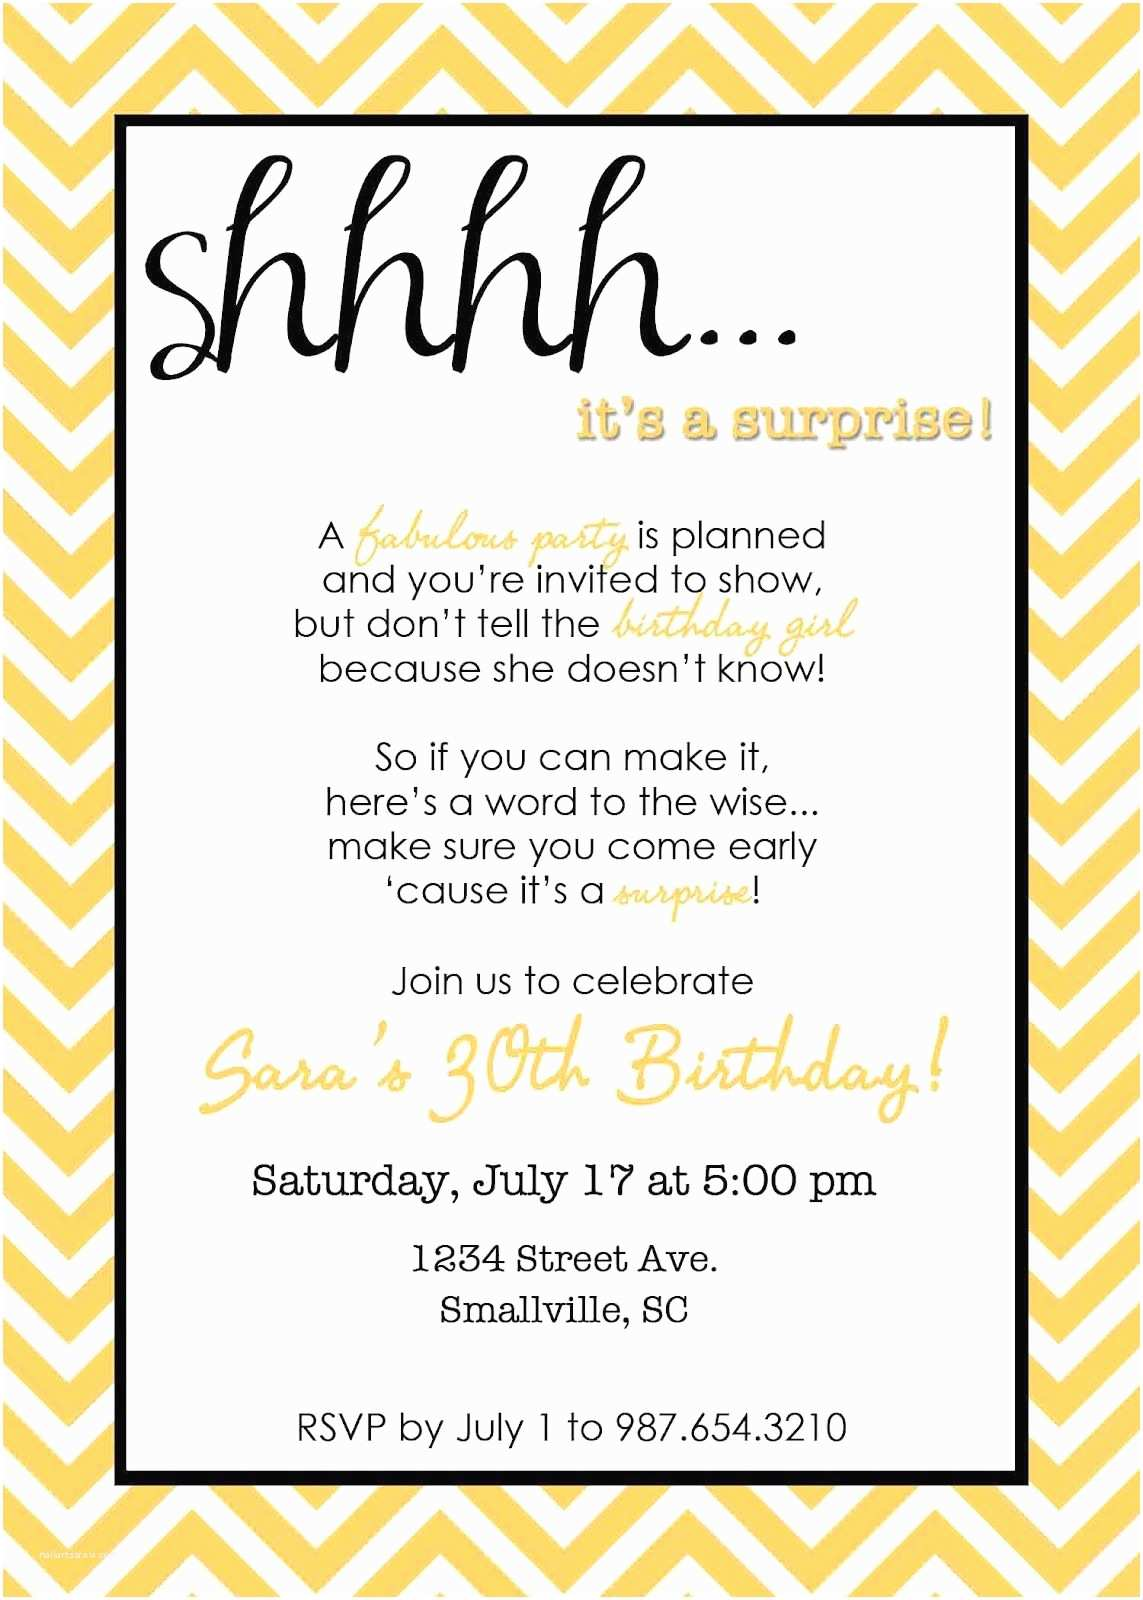 Cool Birthday Invitations Cool Wording For Surprise Birthday Party Invitations